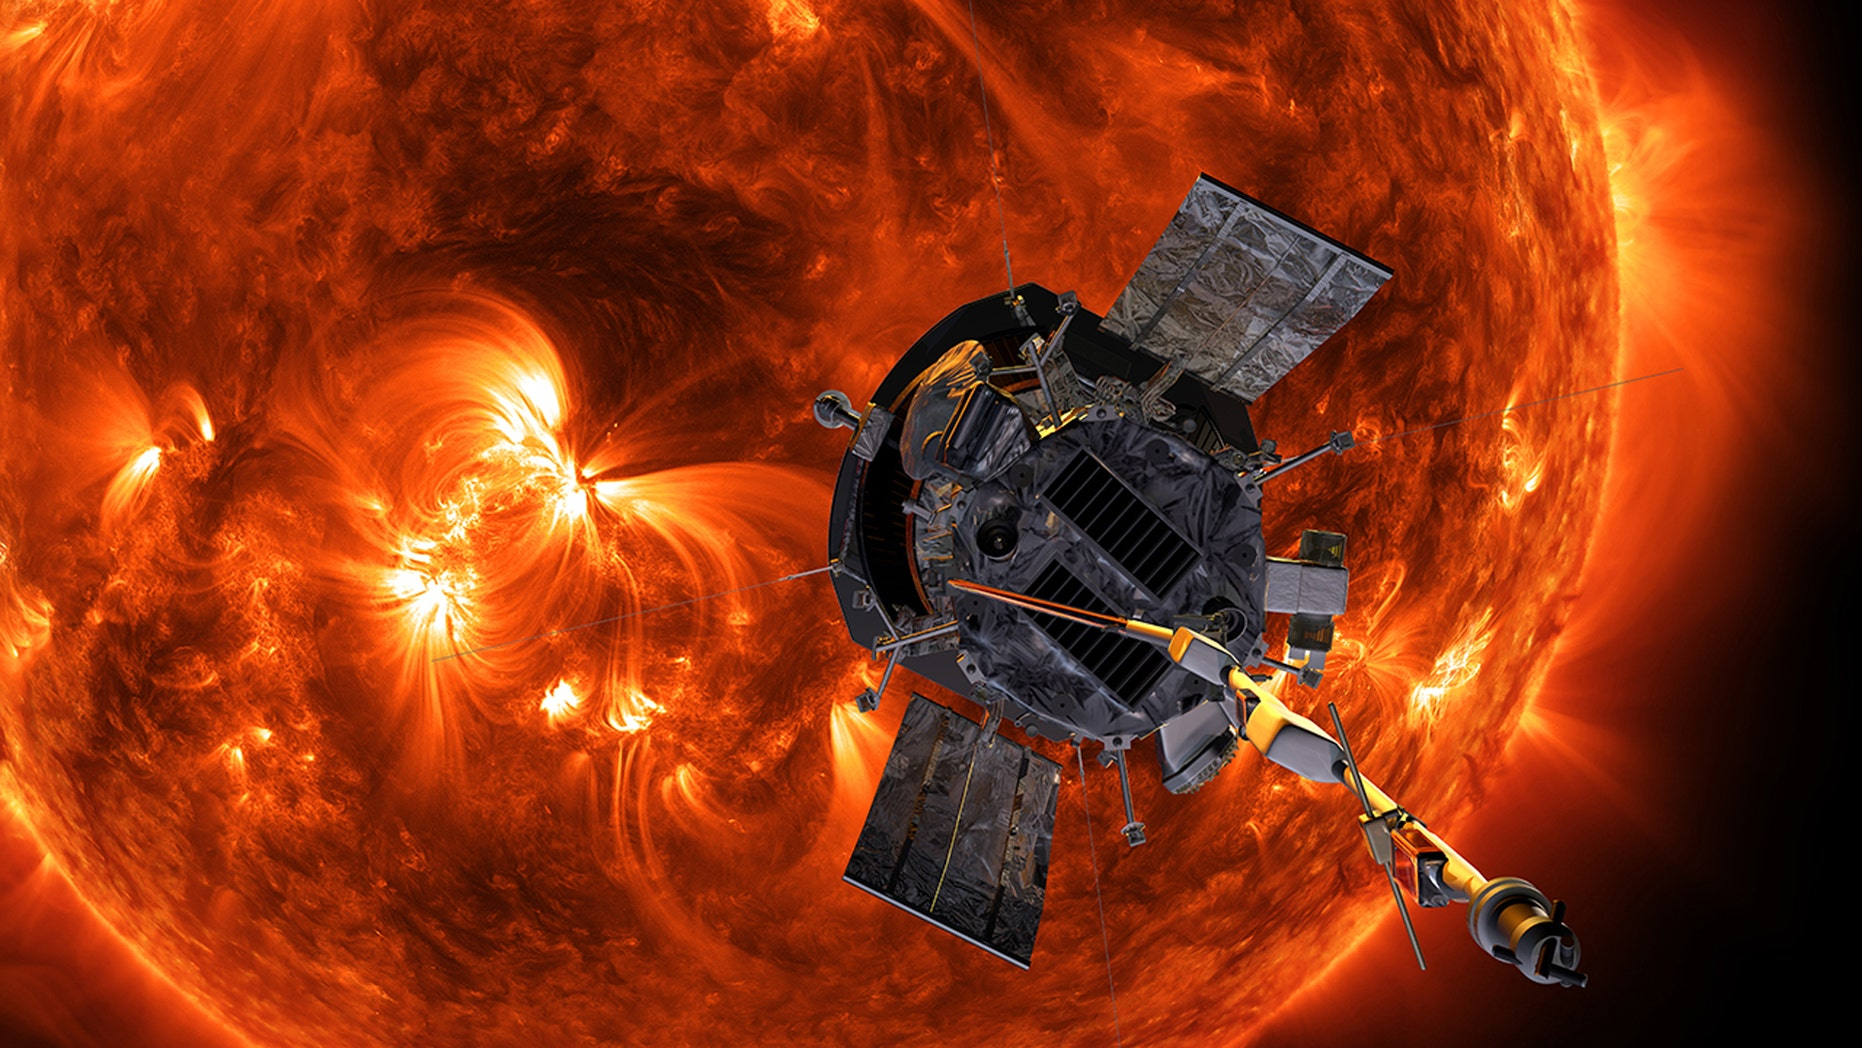 Solar Probe 'alive' after being closest ever to Sun